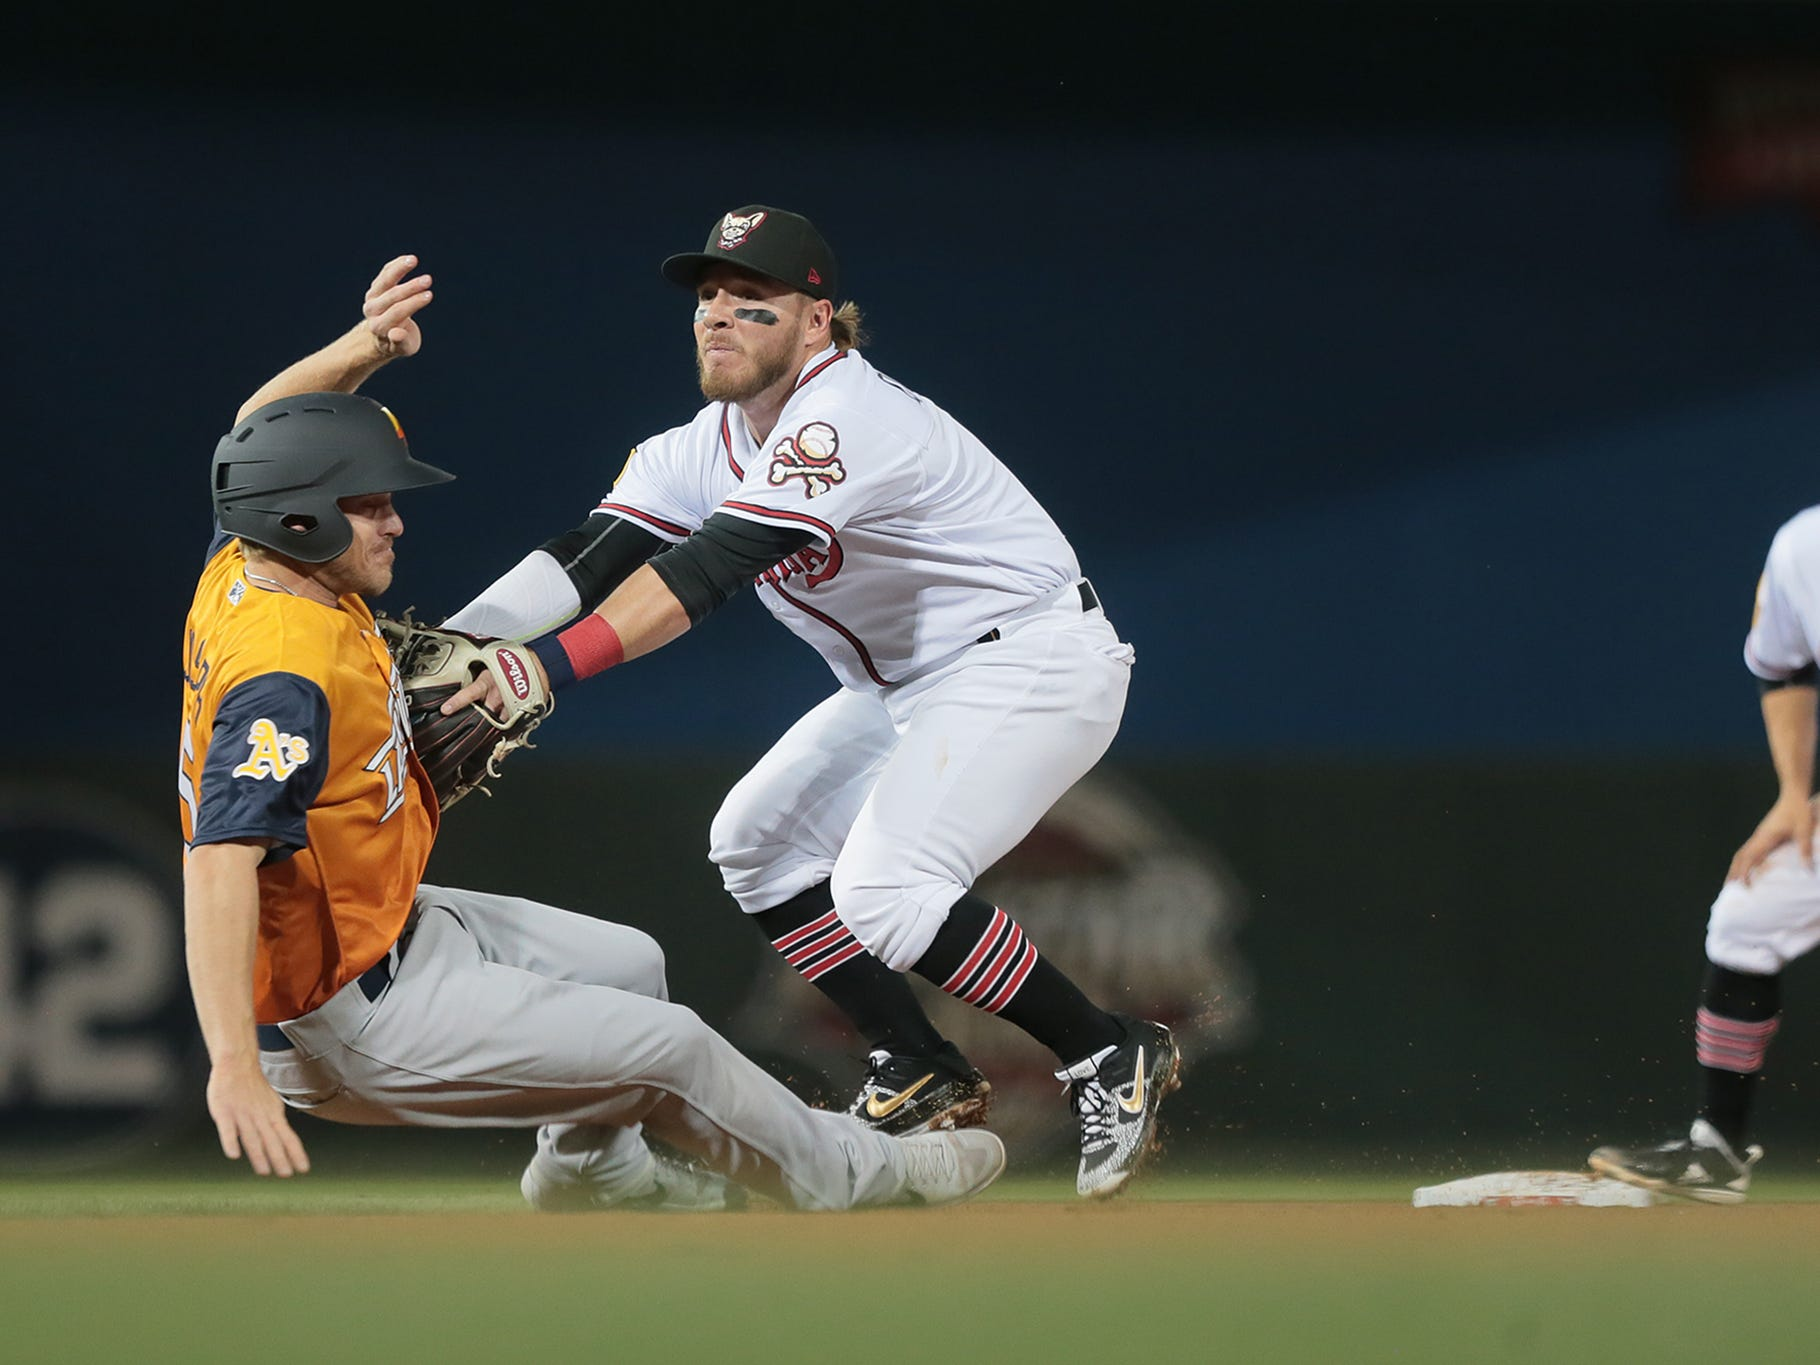 El Paso second baseman Esteban Quiroz appears to tag Las Vegas baserunner Corban Joseph on the approach to second base on opening night for the Chihuahuas. Joseph was called safe on the play.